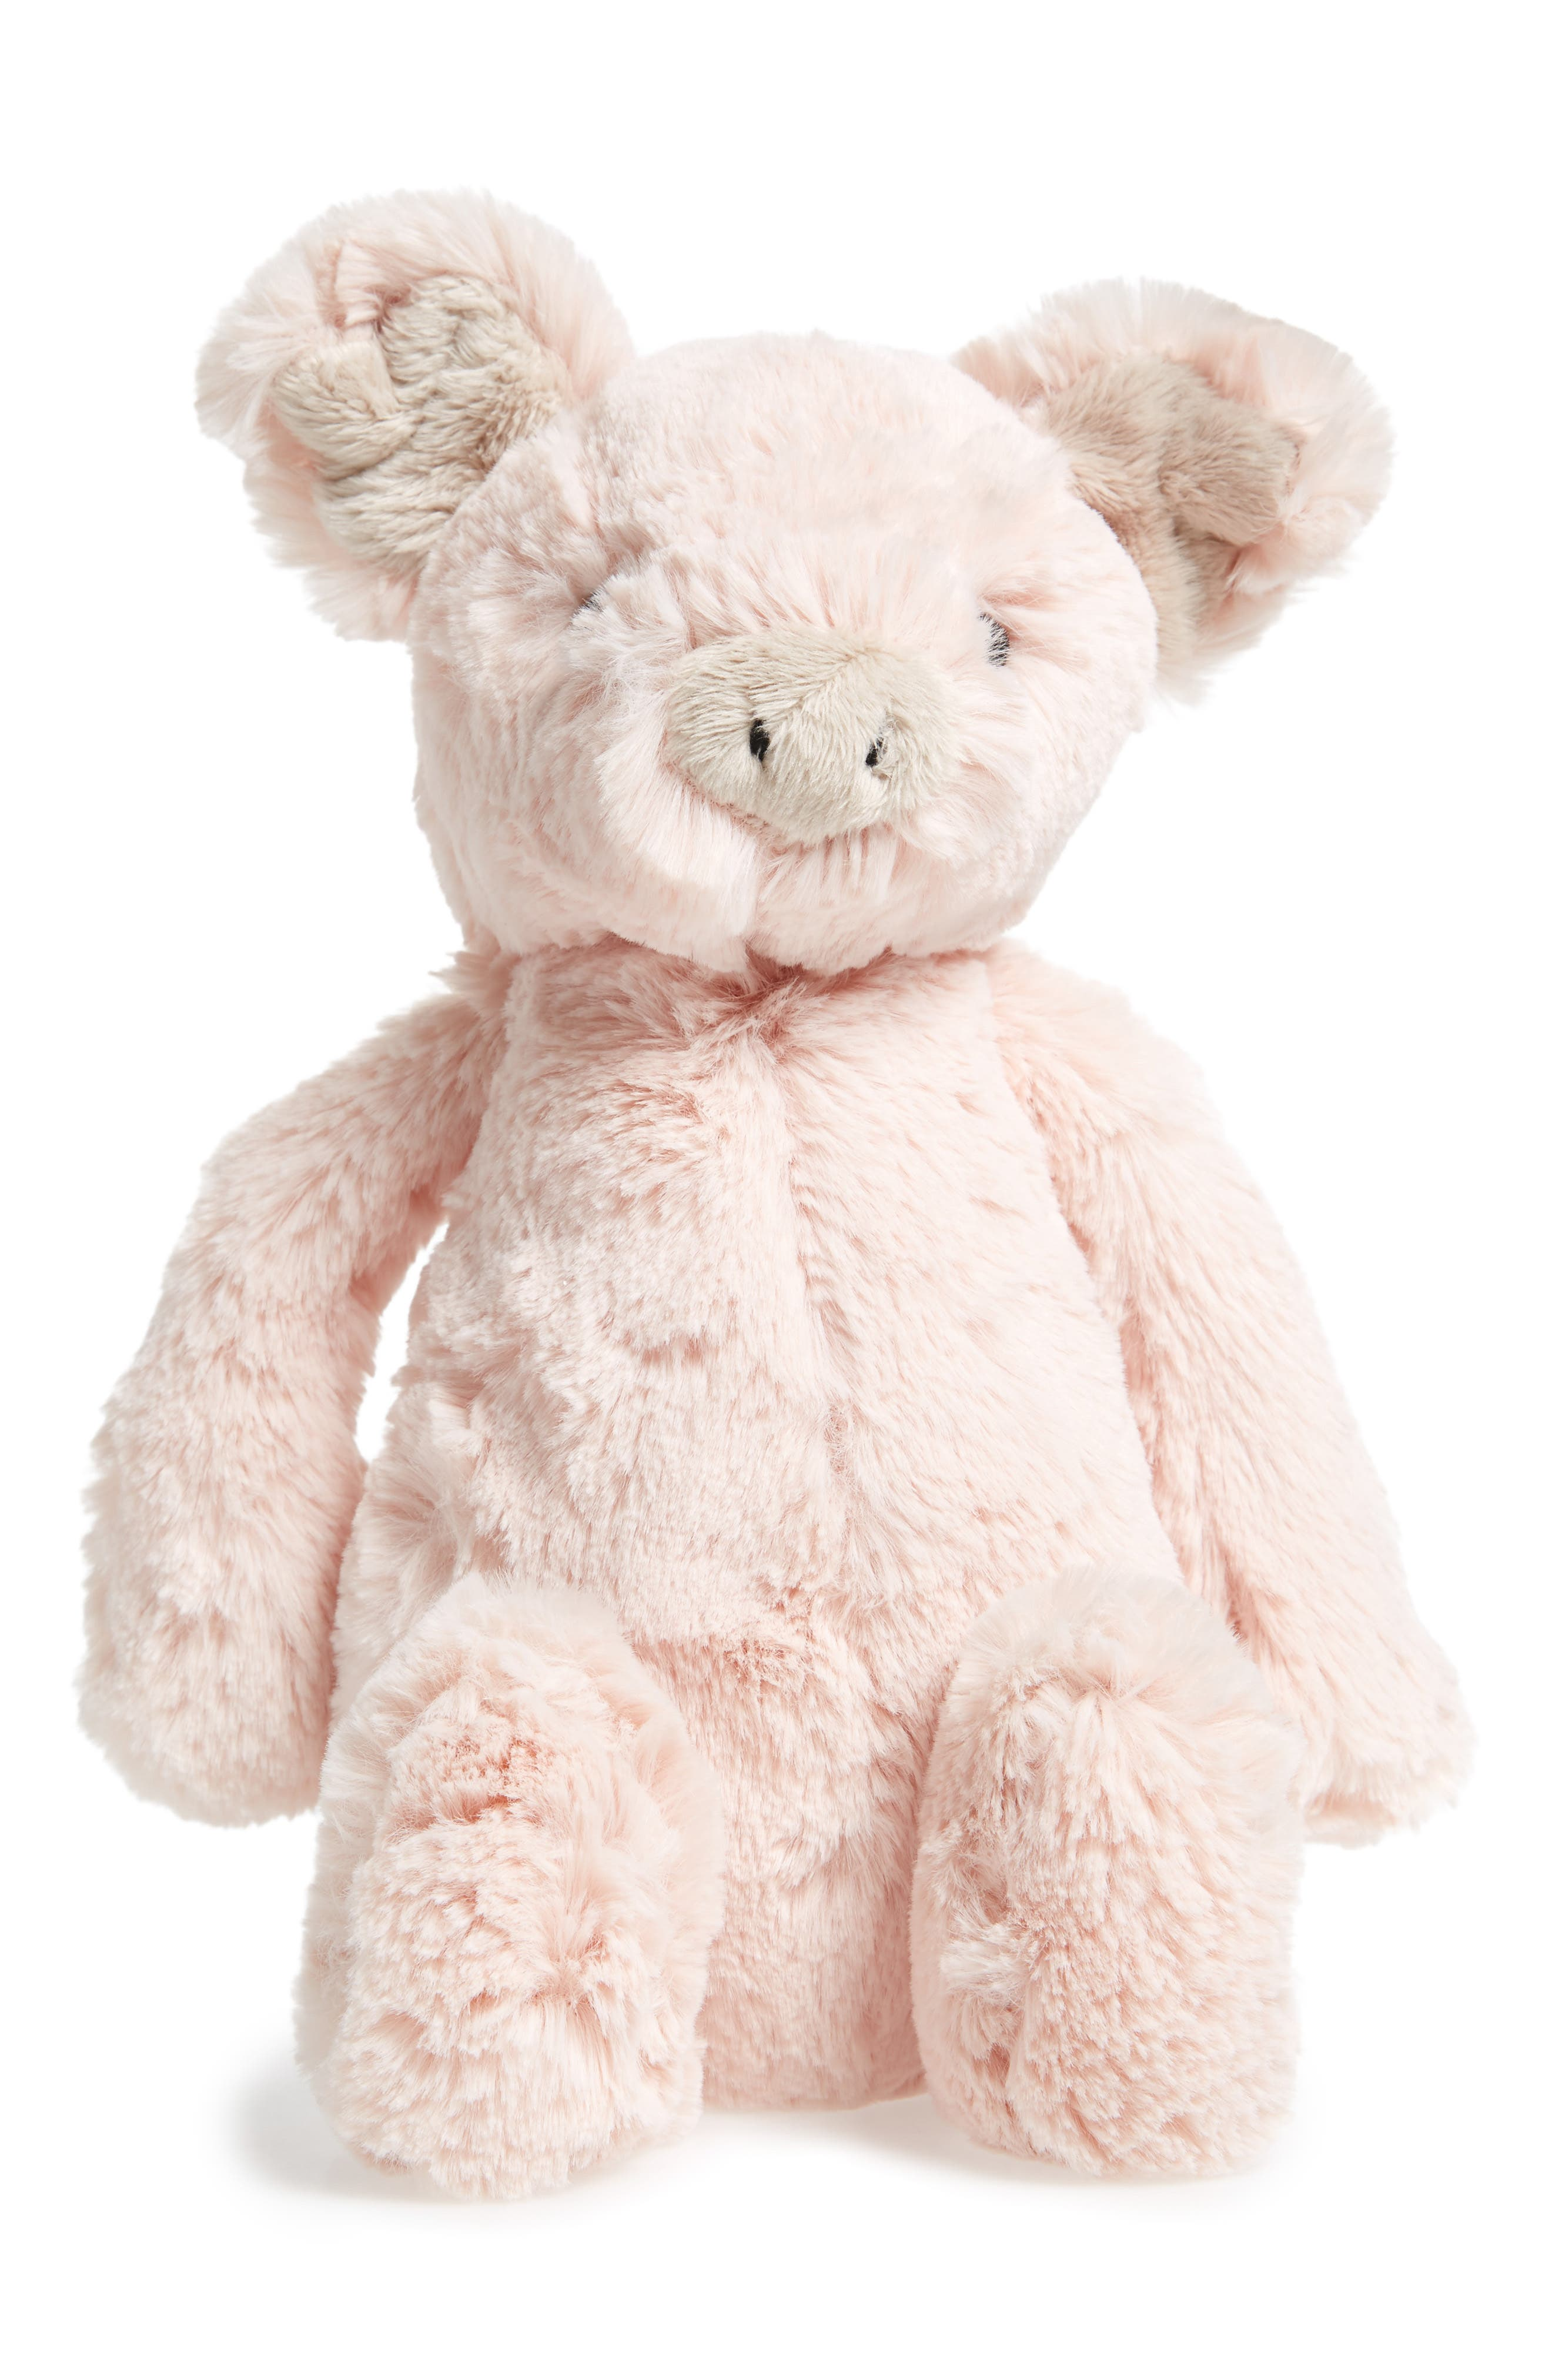 'Bashful Piggy' Stuffed Animal,                             Alternate thumbnail 2, color,                             PINK